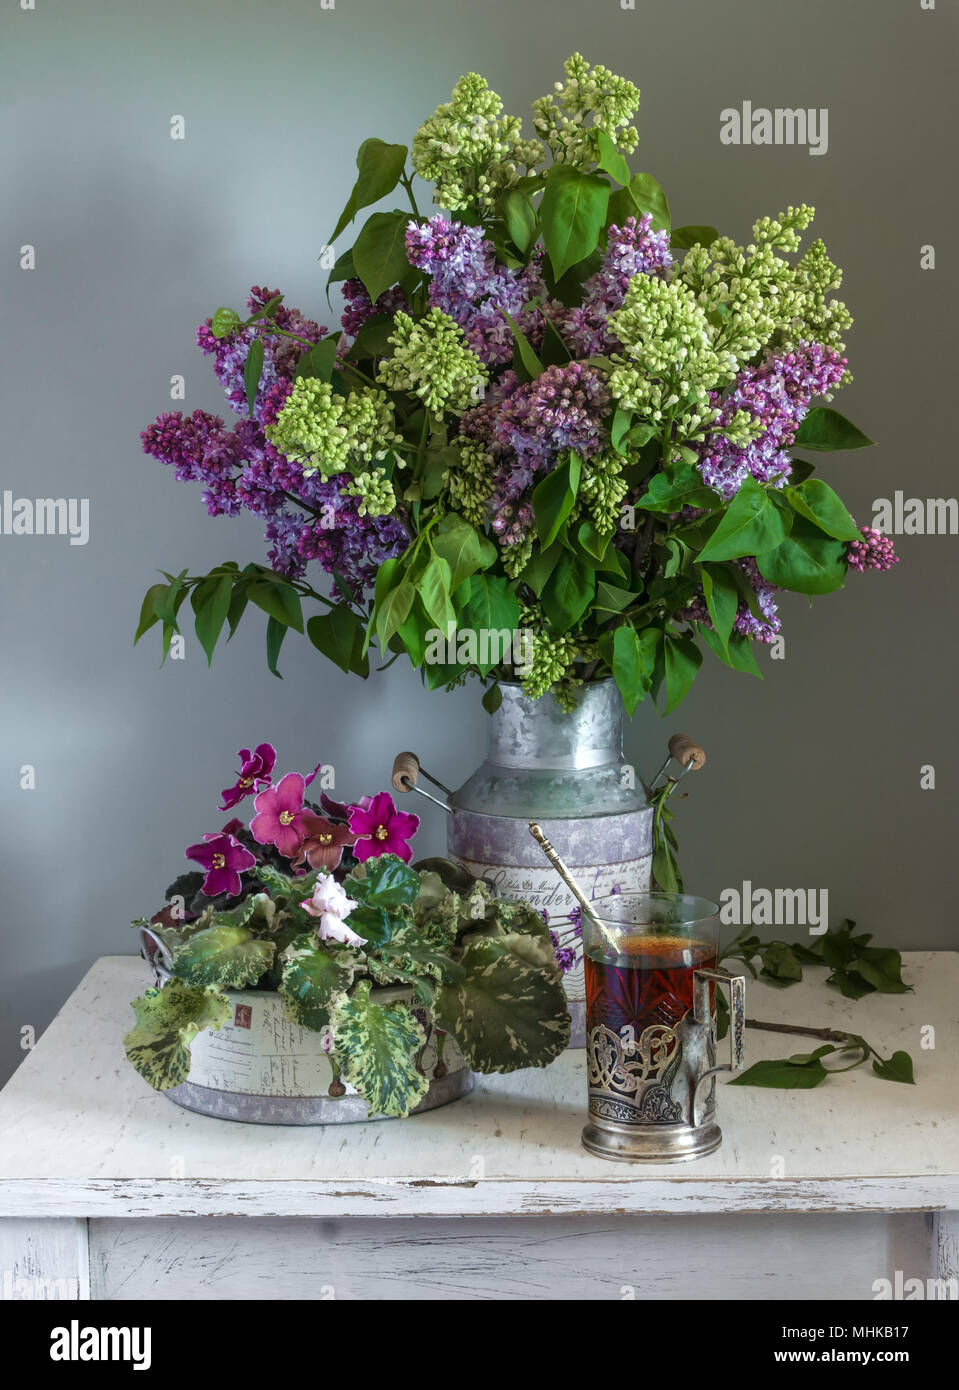 still life with flowers and a glass of tea. vintage, lilac, violets. - Stock Image